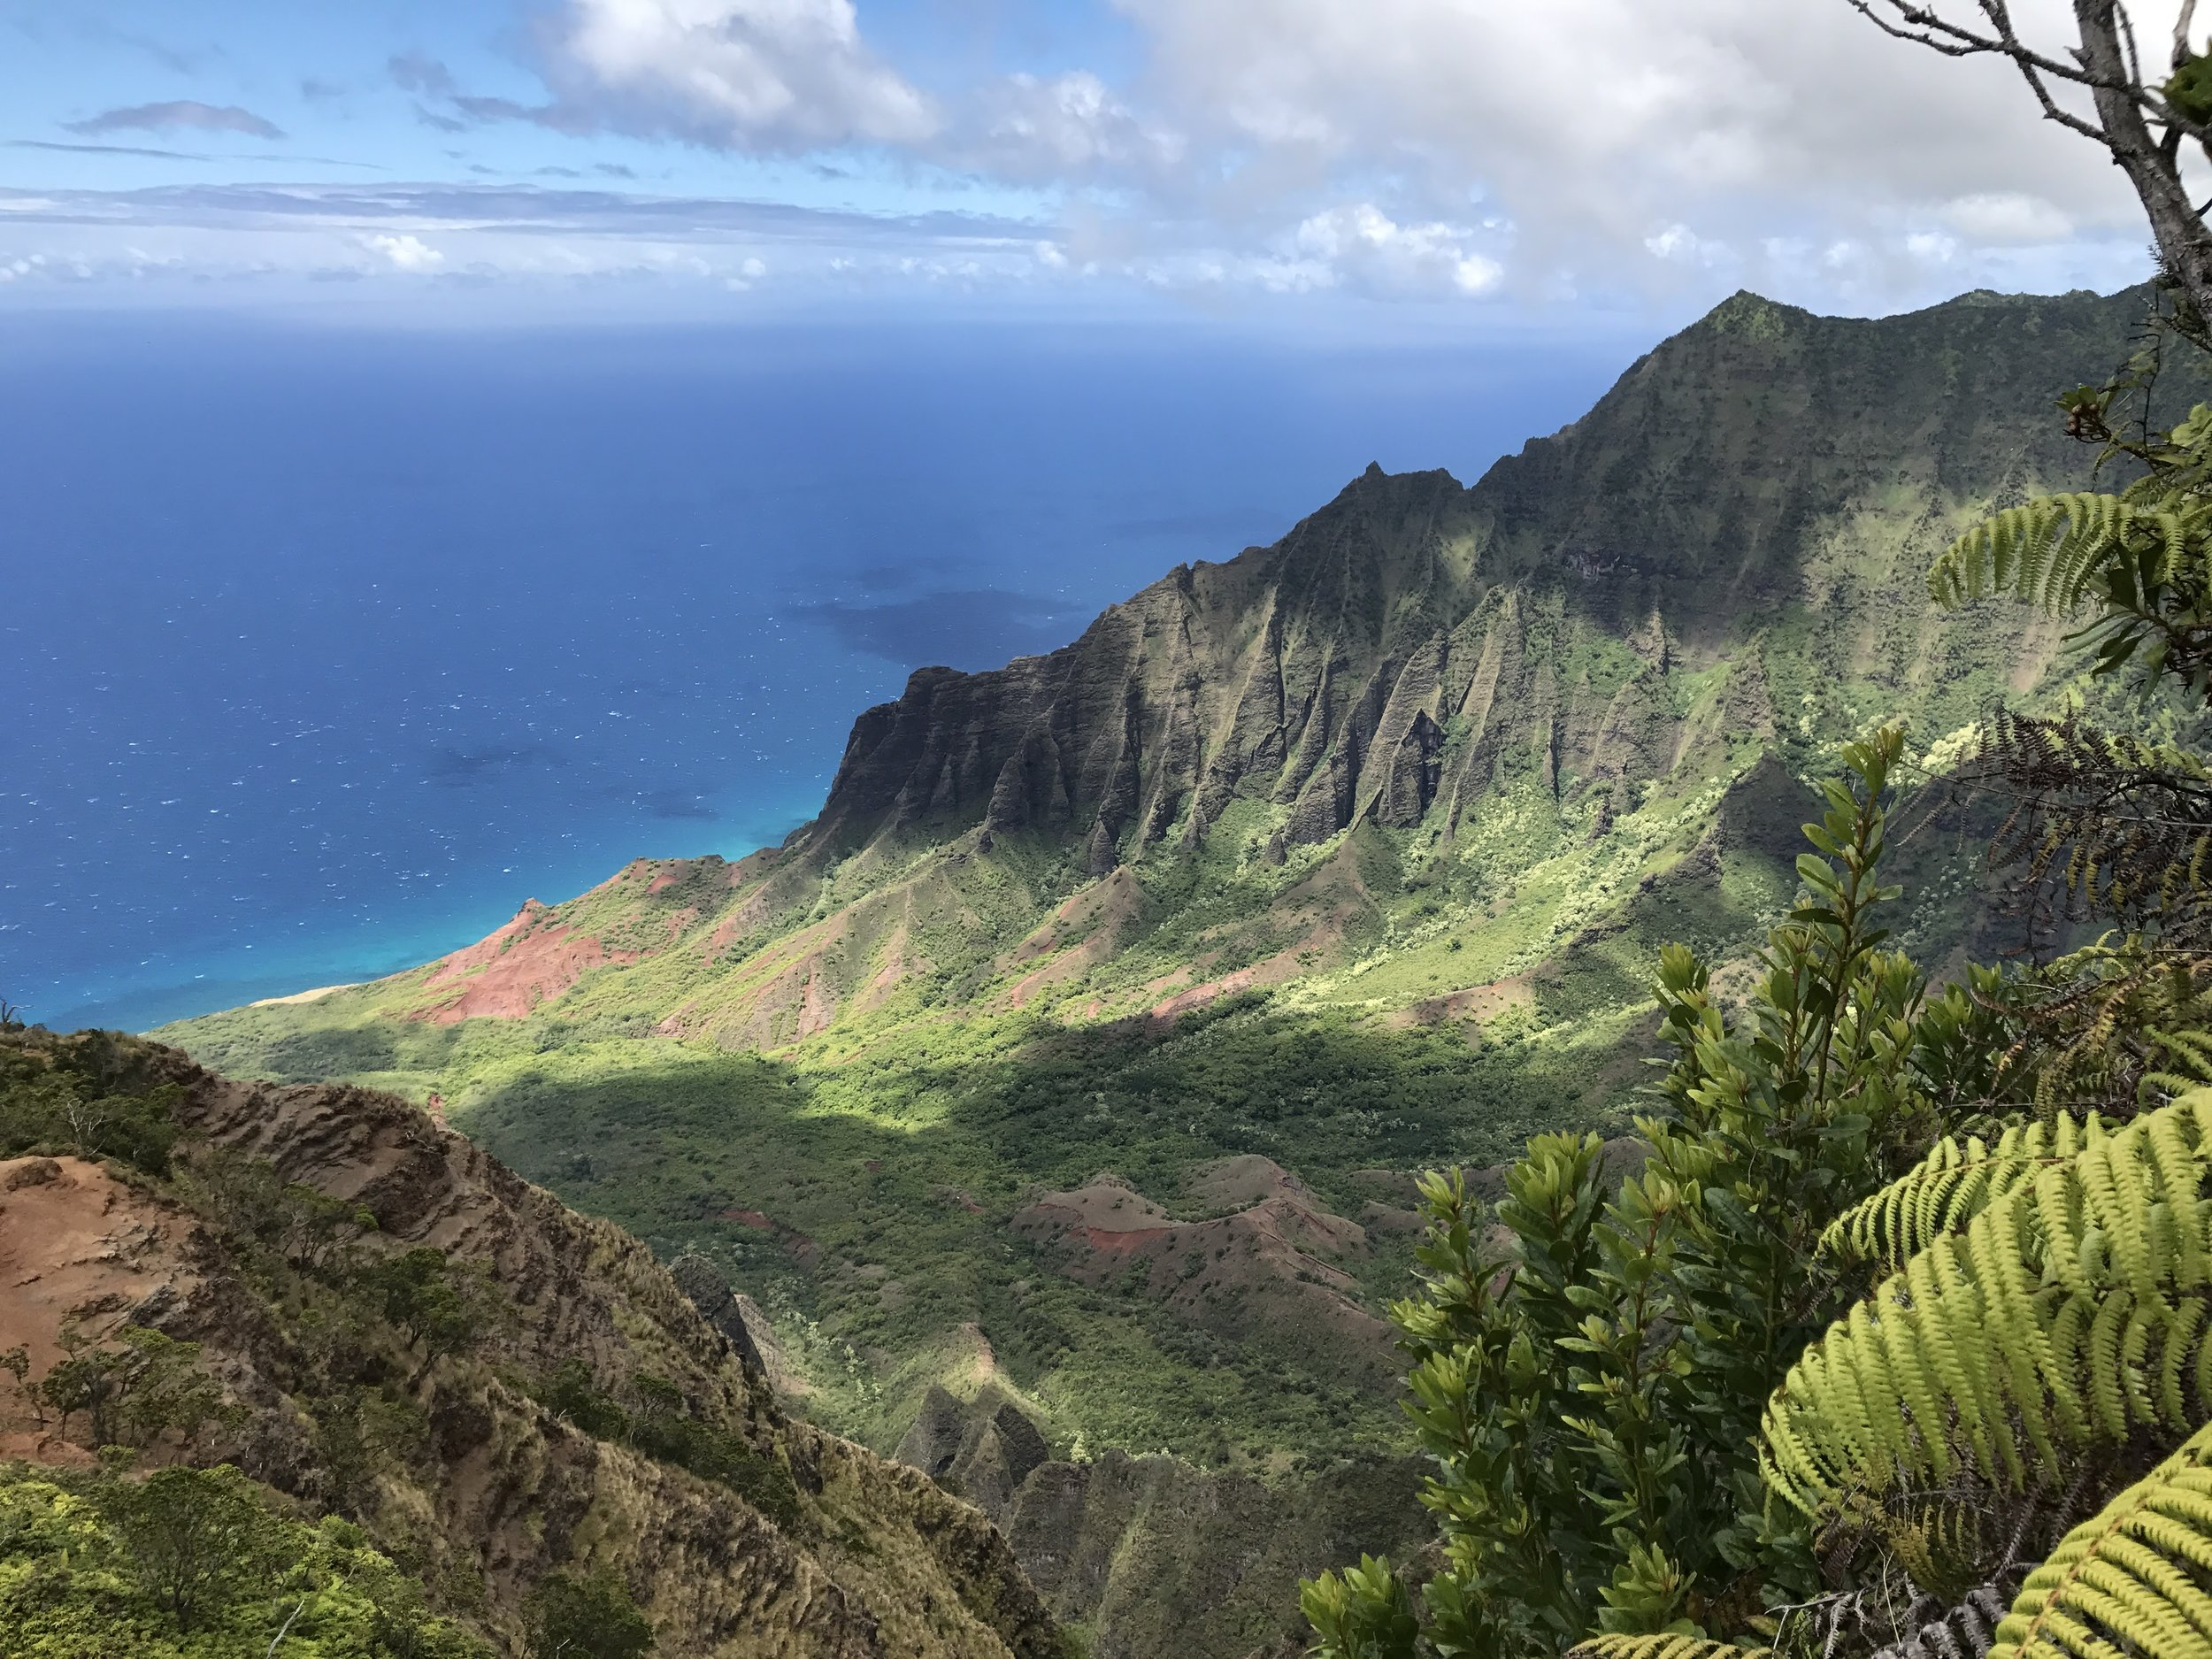 No filter needed. If you love hiking and food trucks, Kauai is the island for you.